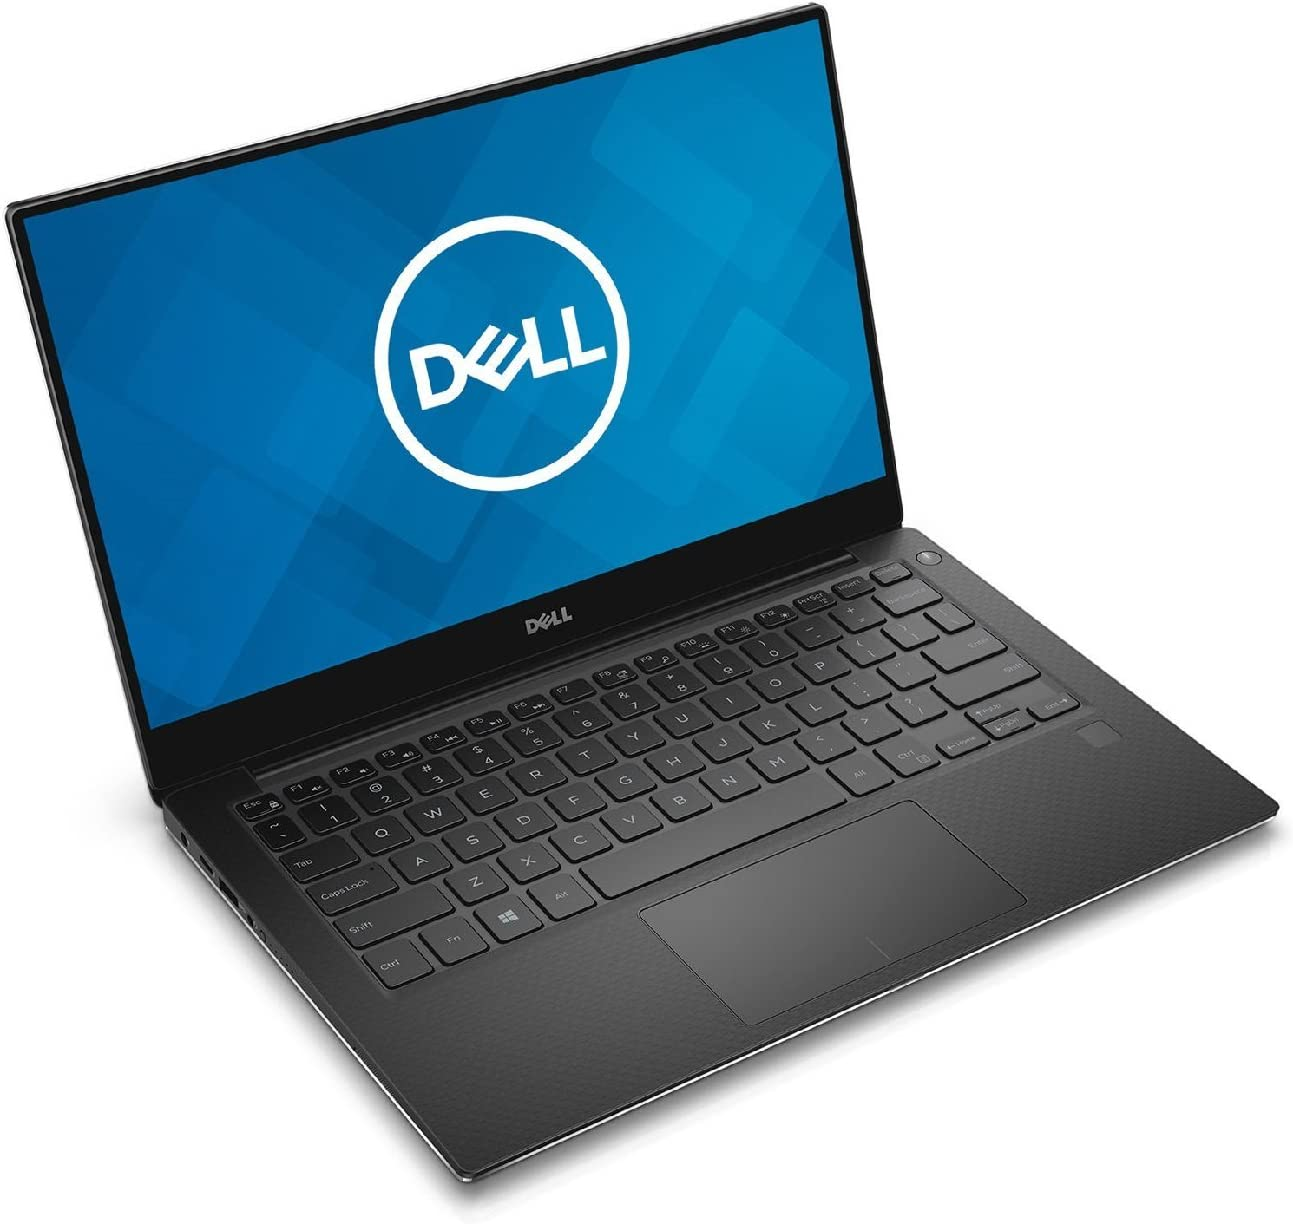 "Dell PFG0V XPS 13 9360 Notebook with Intel i7-7560U, 8GB 256GB SSD, 13.3"" (Certified Refurbished)"